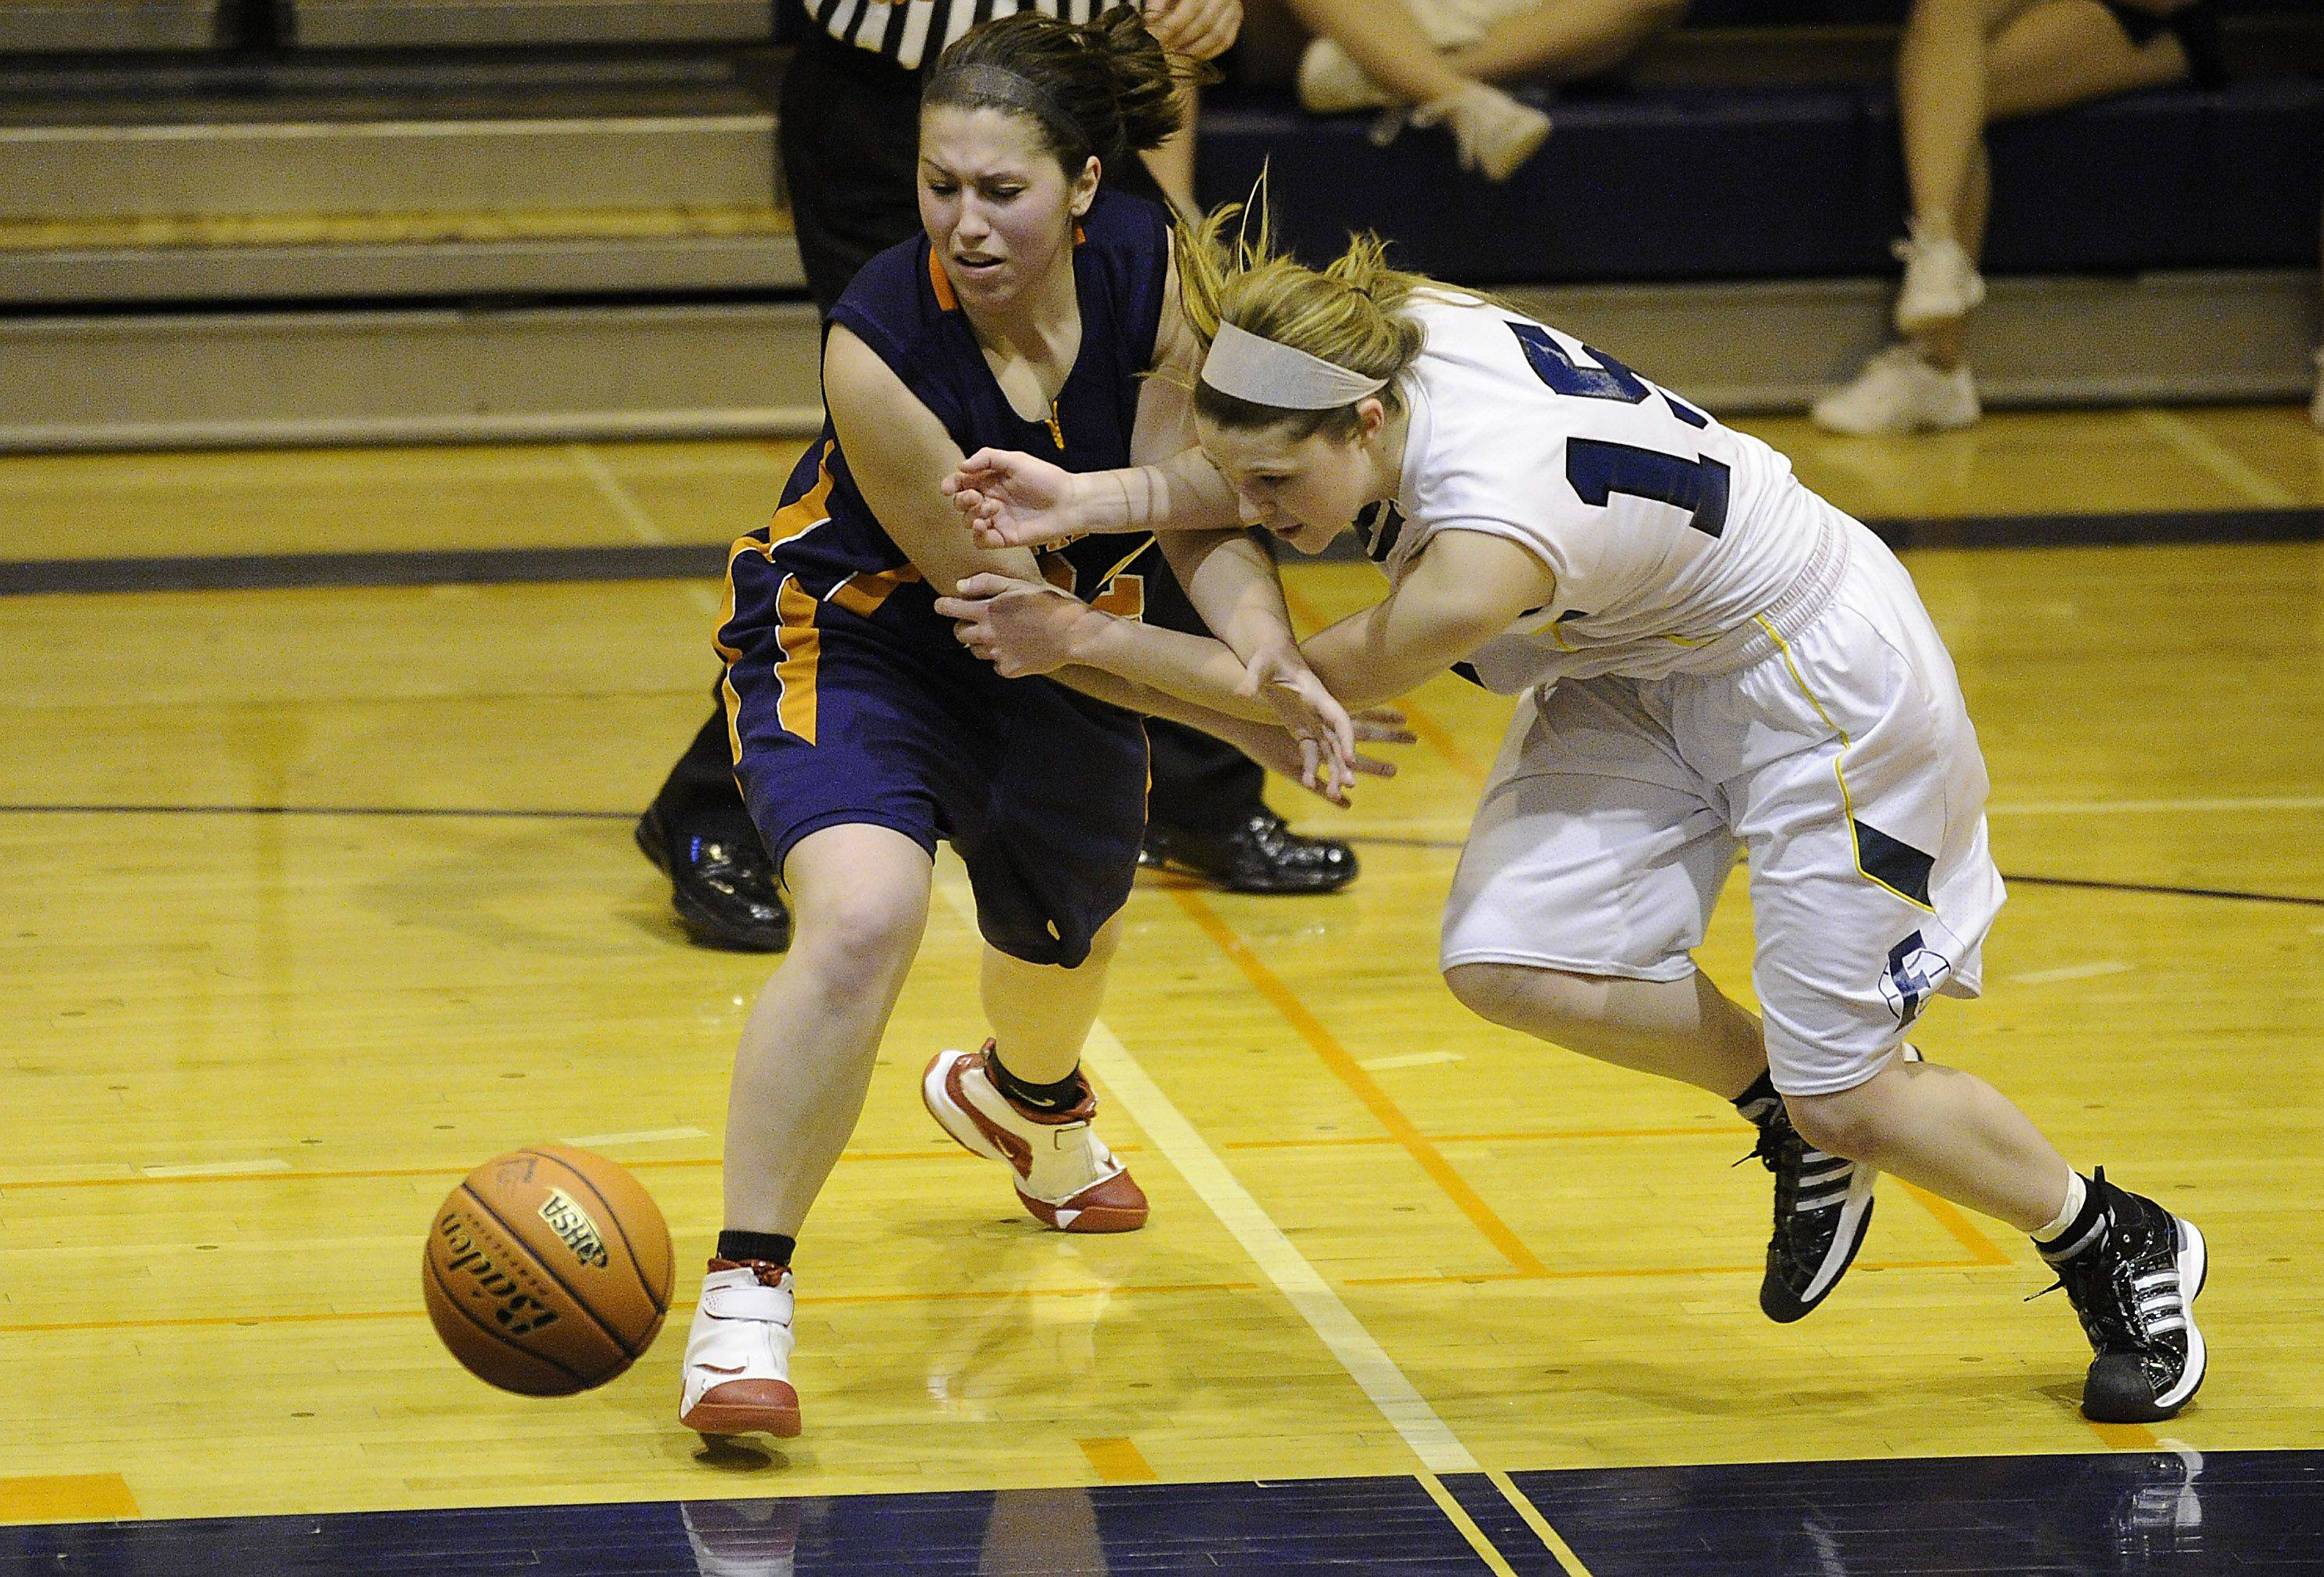 Fremd's Jaimie Groot and Buffalo Grove's Emily Georgoulis fight their way towards a loose ball in the second half.